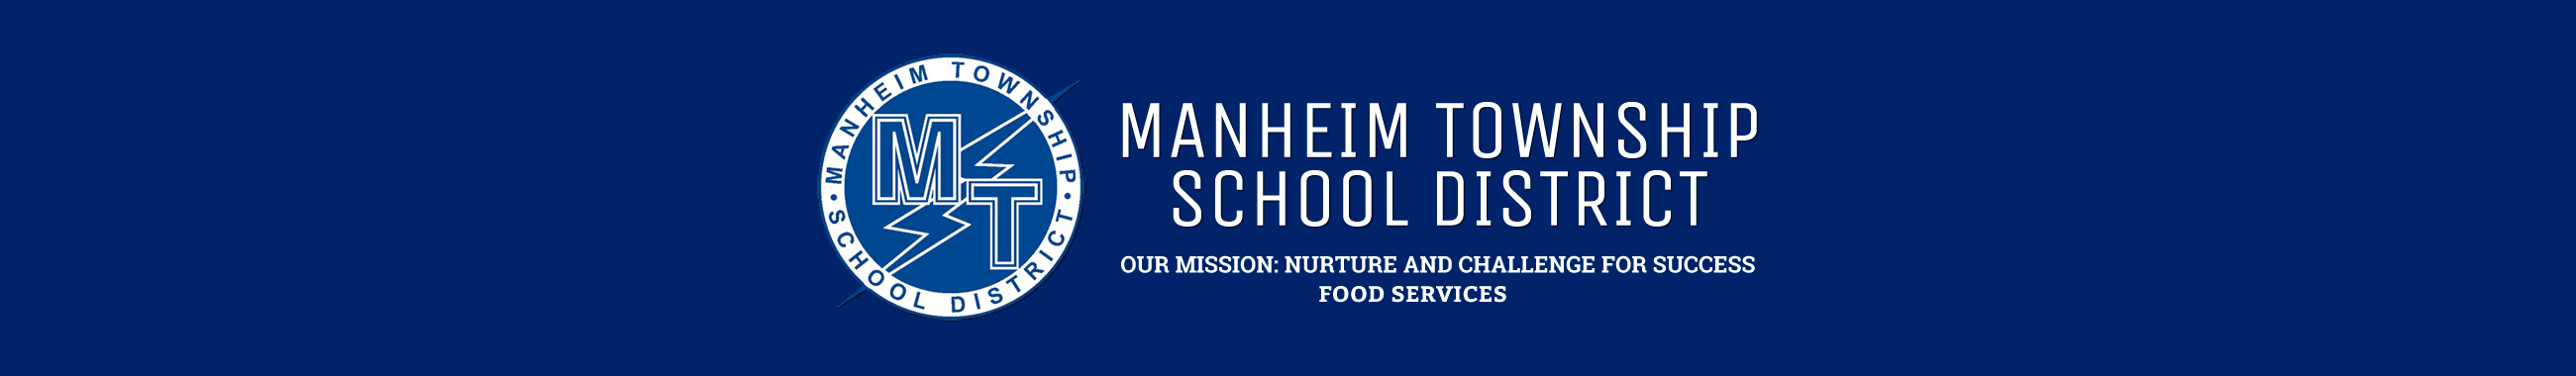 Manheim Township School District – School Nutrition And Fitness With Regard To Manheim Township School District Calendar